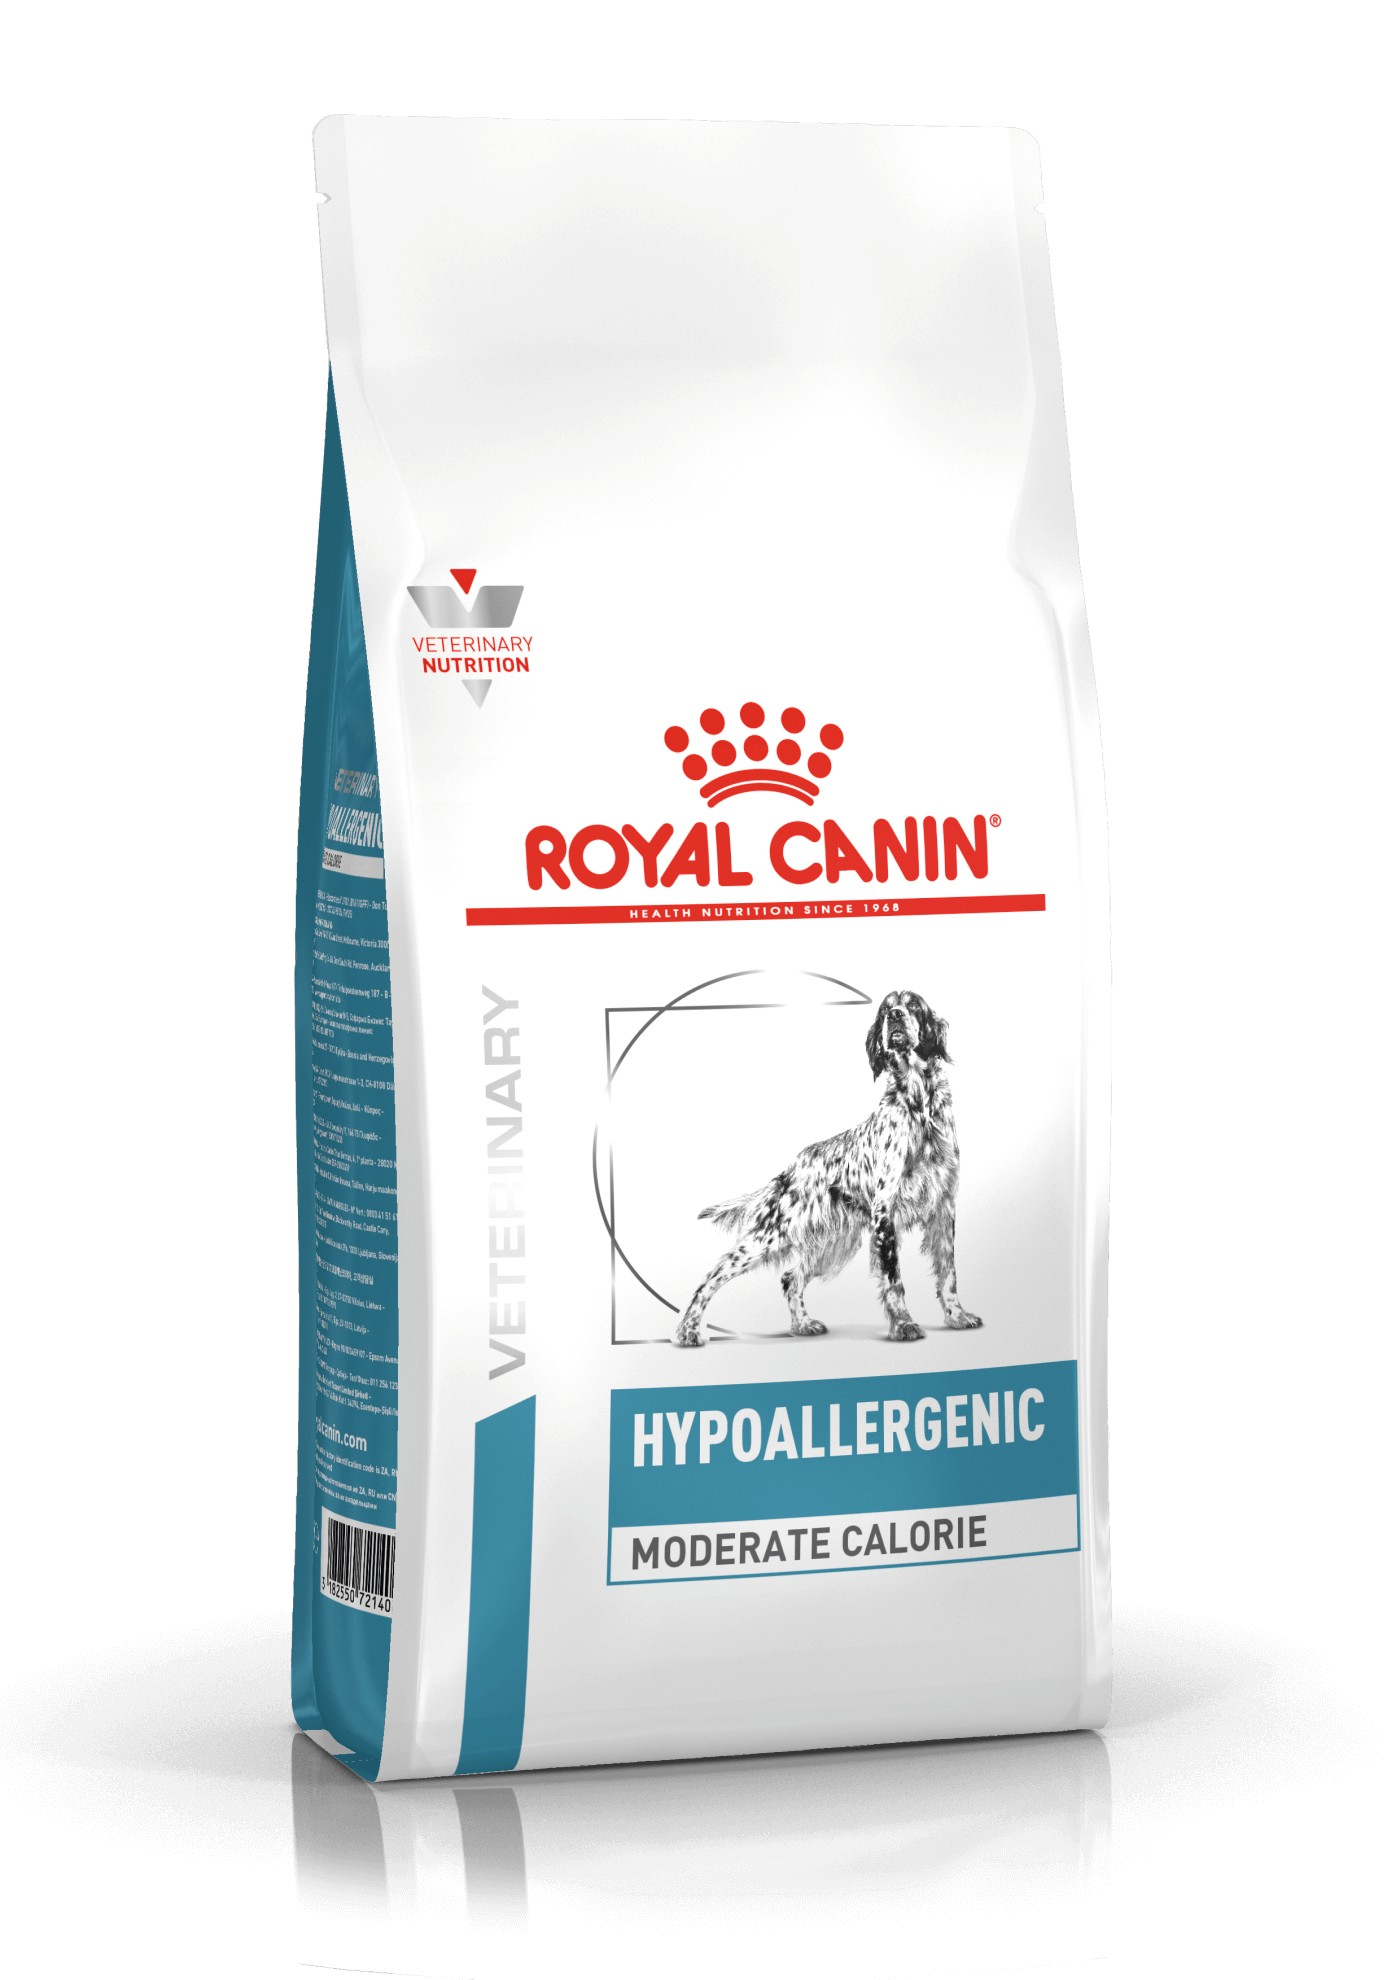 Royal Canin Veterinary Hypoallergenic Moderate Calorie hondenvoer